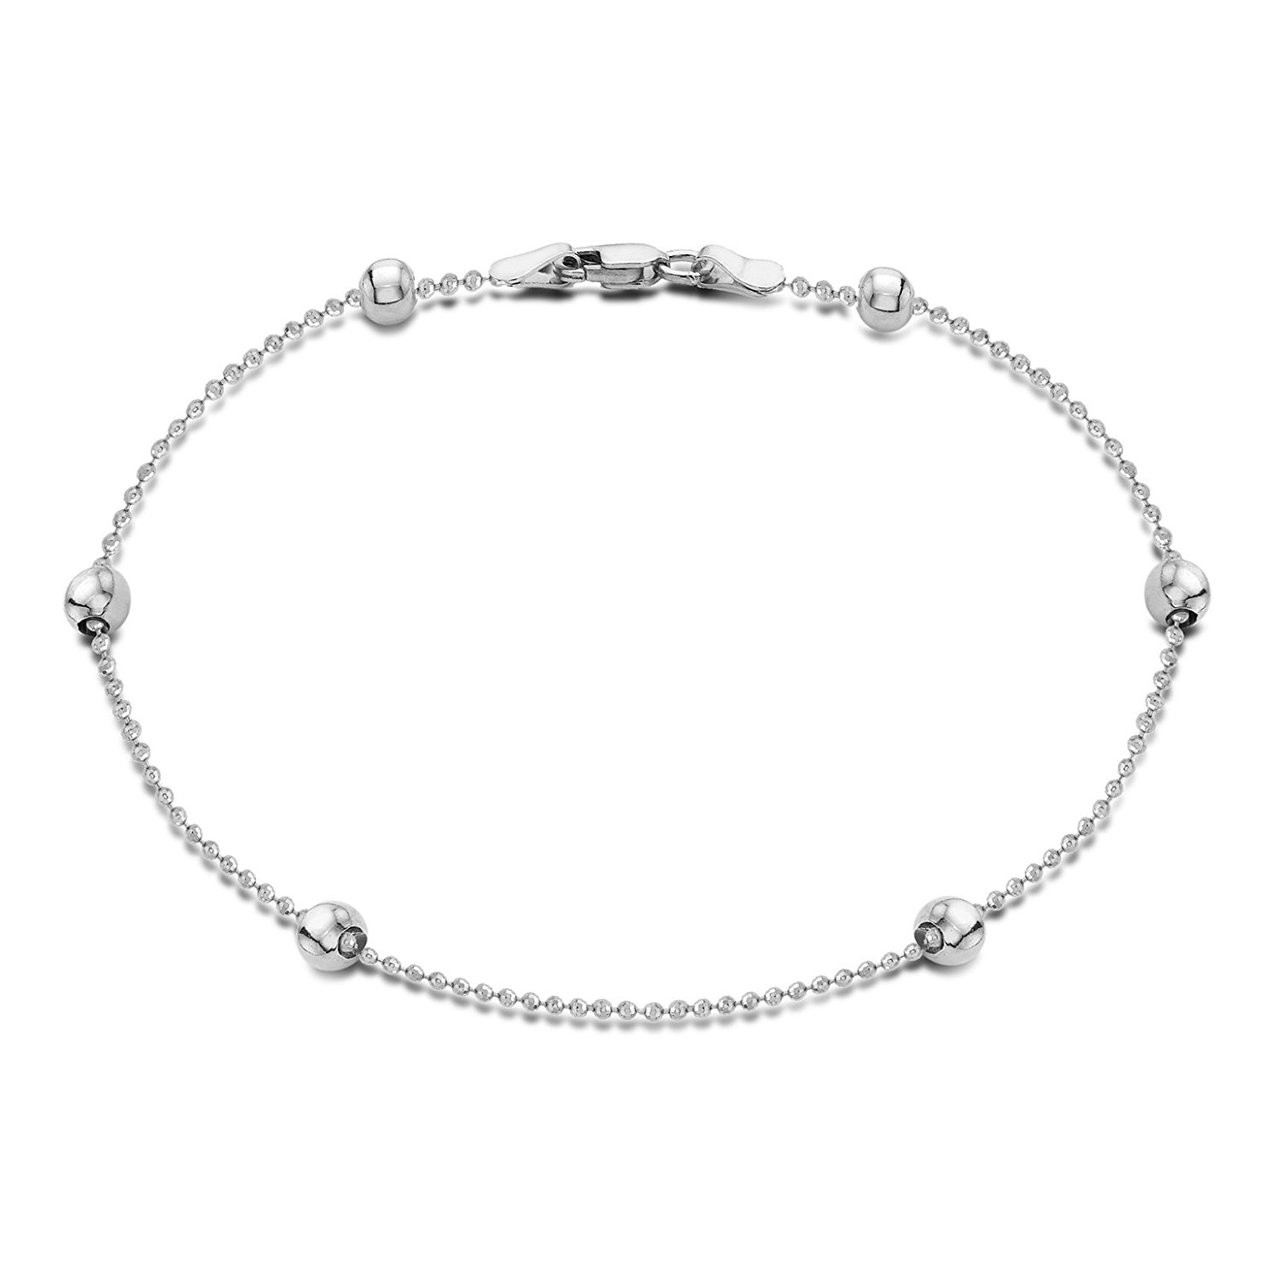 Women s 925 Sterling Silver Ball Chain Charm Anklet ... 60ca52cd9